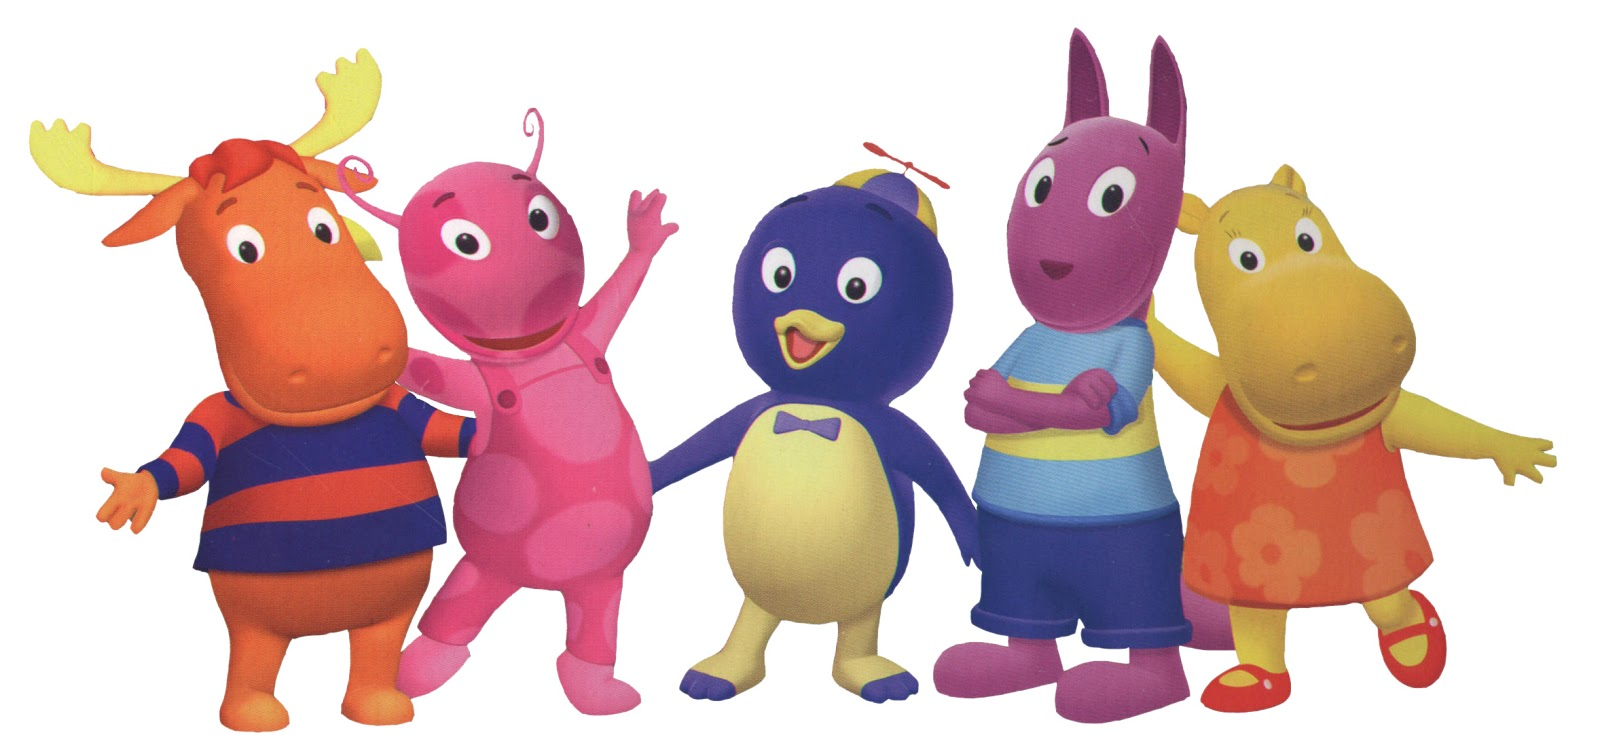 Backyardigans Sunny Day :  Life~ Its Gonna be a Bright Sunny Day! (and over 1000 page views